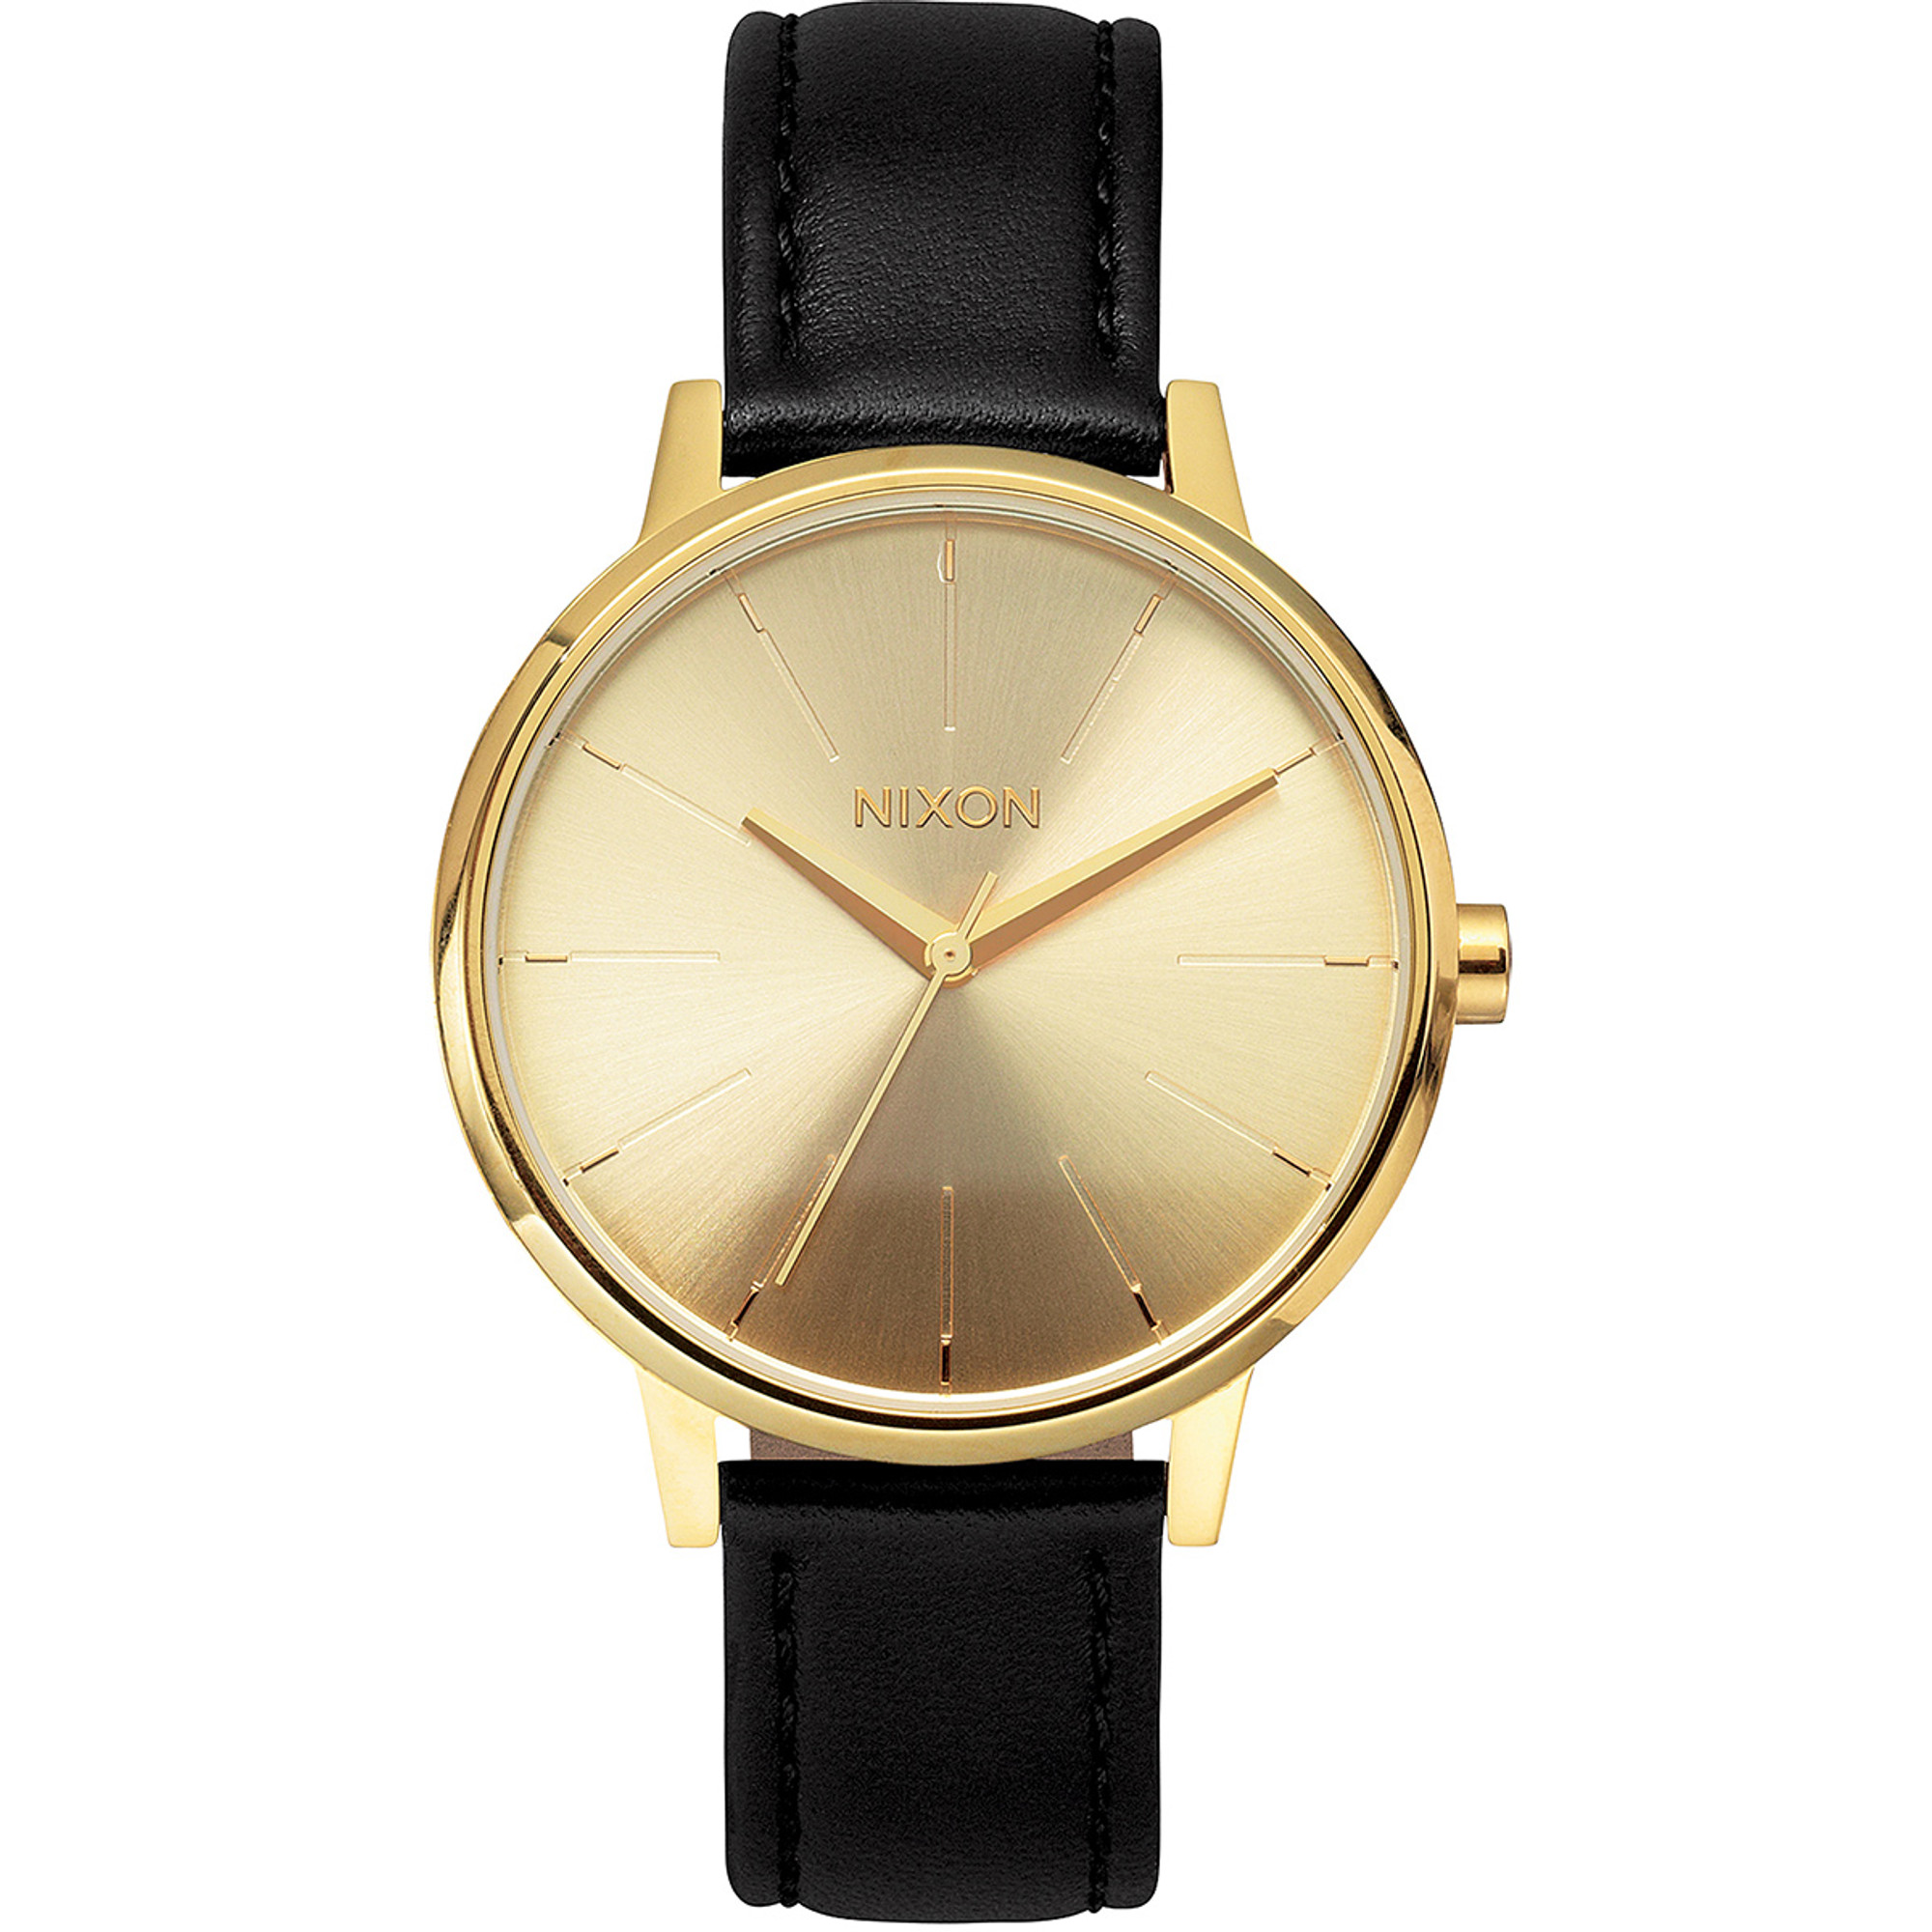 NIXON Kensington Leather Armbanduhr A108-501-00